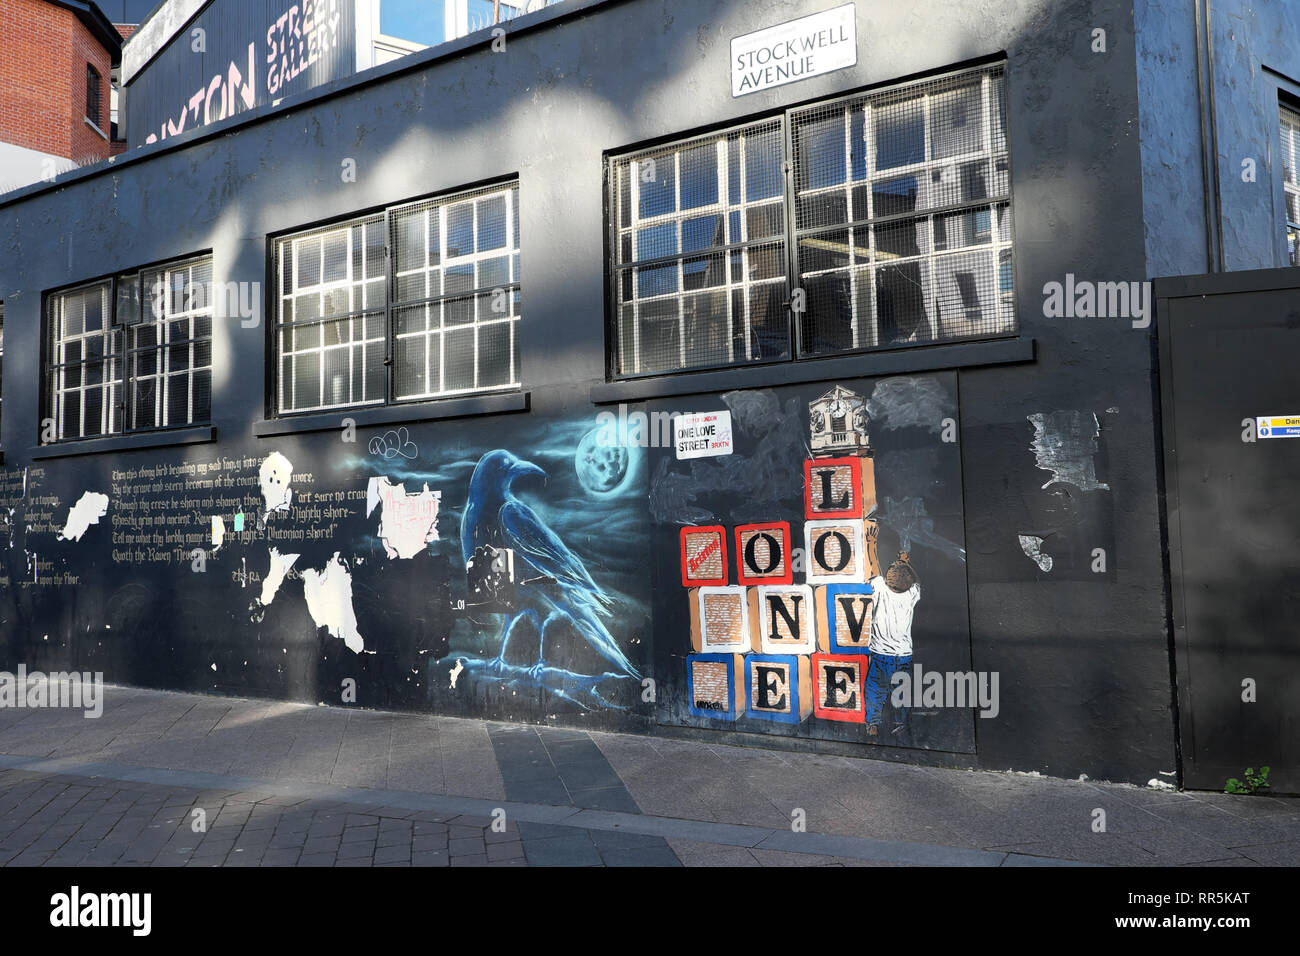 One Love Street graffiti on building at Stockwell Avenue in Brixton, South London UK  KATHY DEWITT - Stock Image